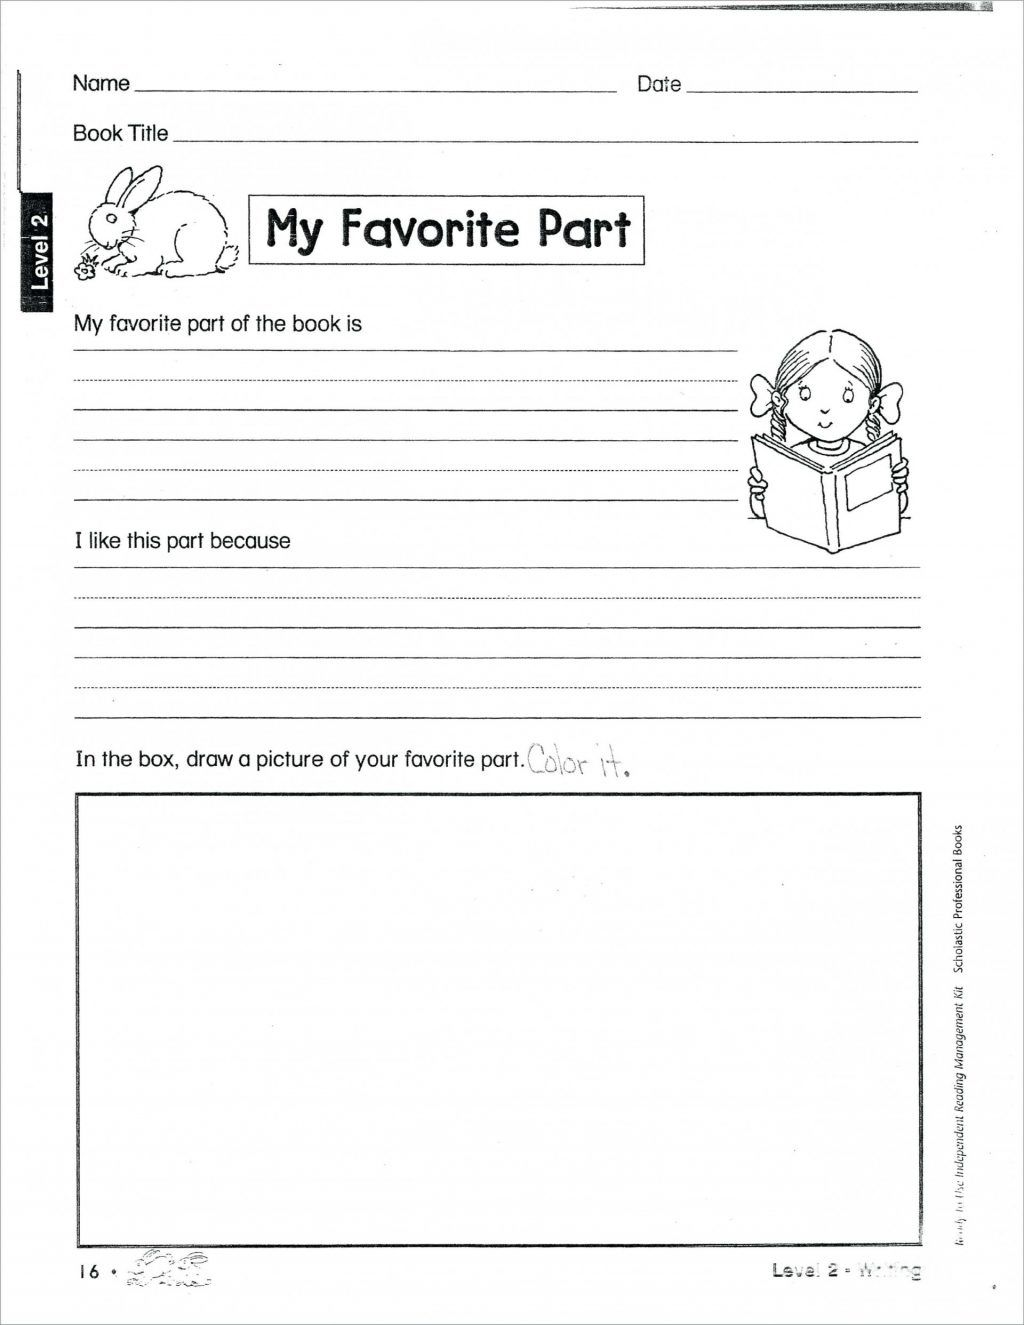 Worksheet Ideas Book Report Template Grade Free Amazing Intended For Book Report Template 2nd Grade In 2020 Book Report Templates Grade Book 2nd Grade Books